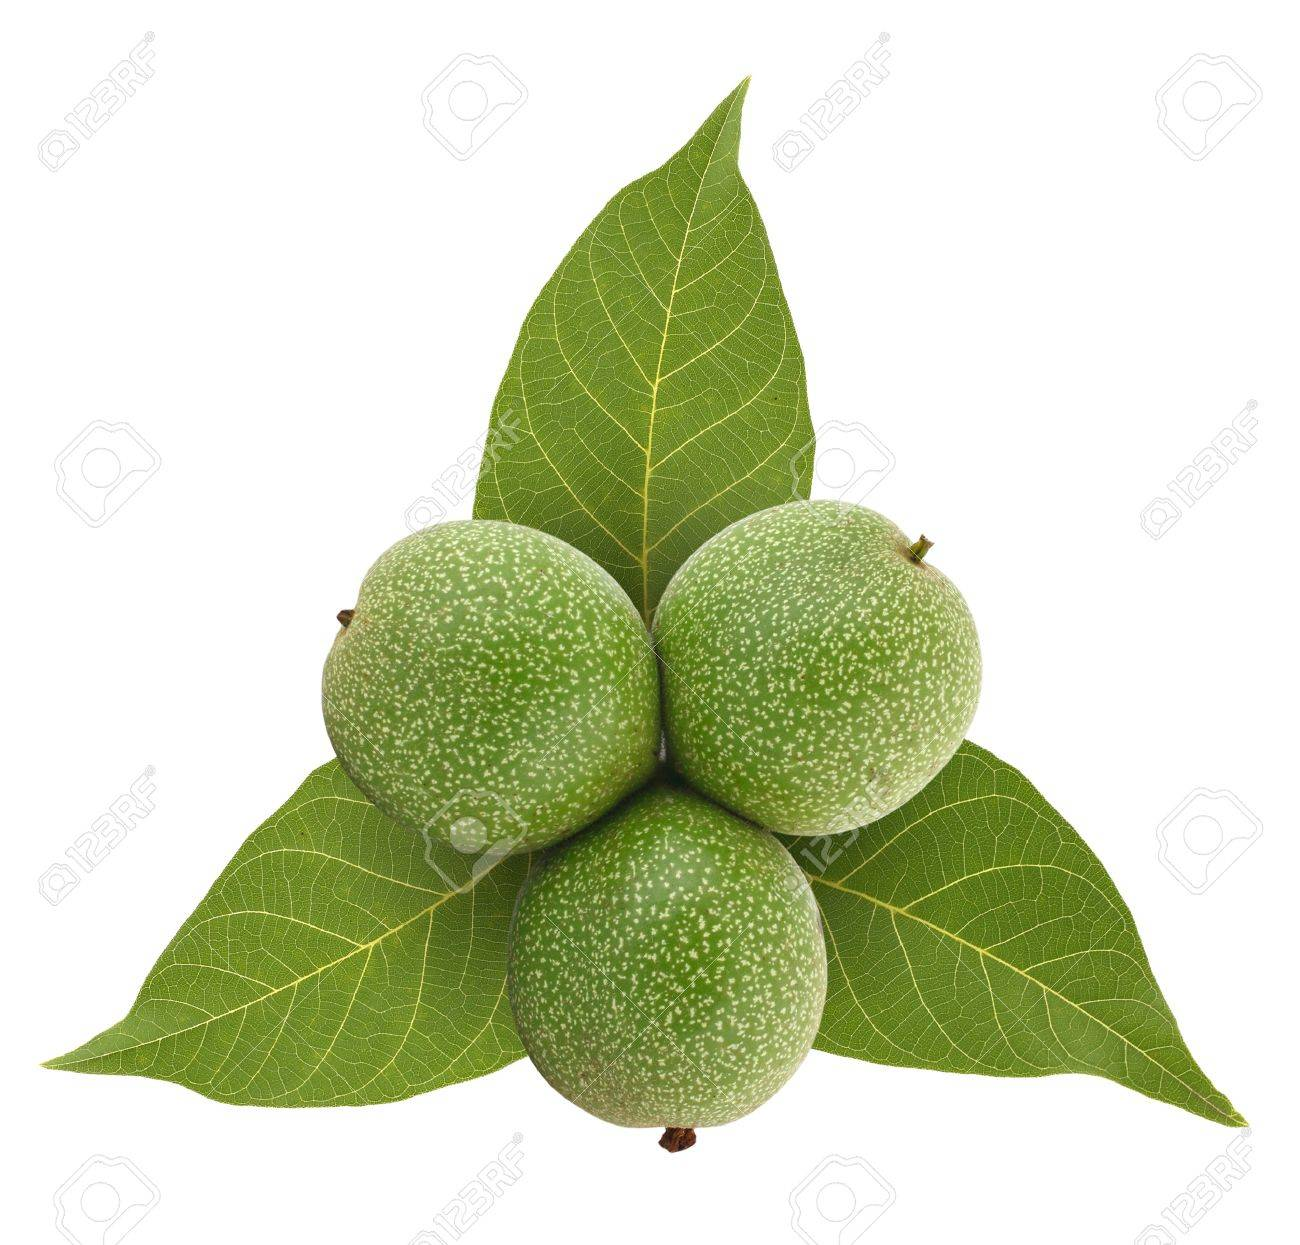 Green walnuts on leafs background, isolated on white Stock Photo - 9835597